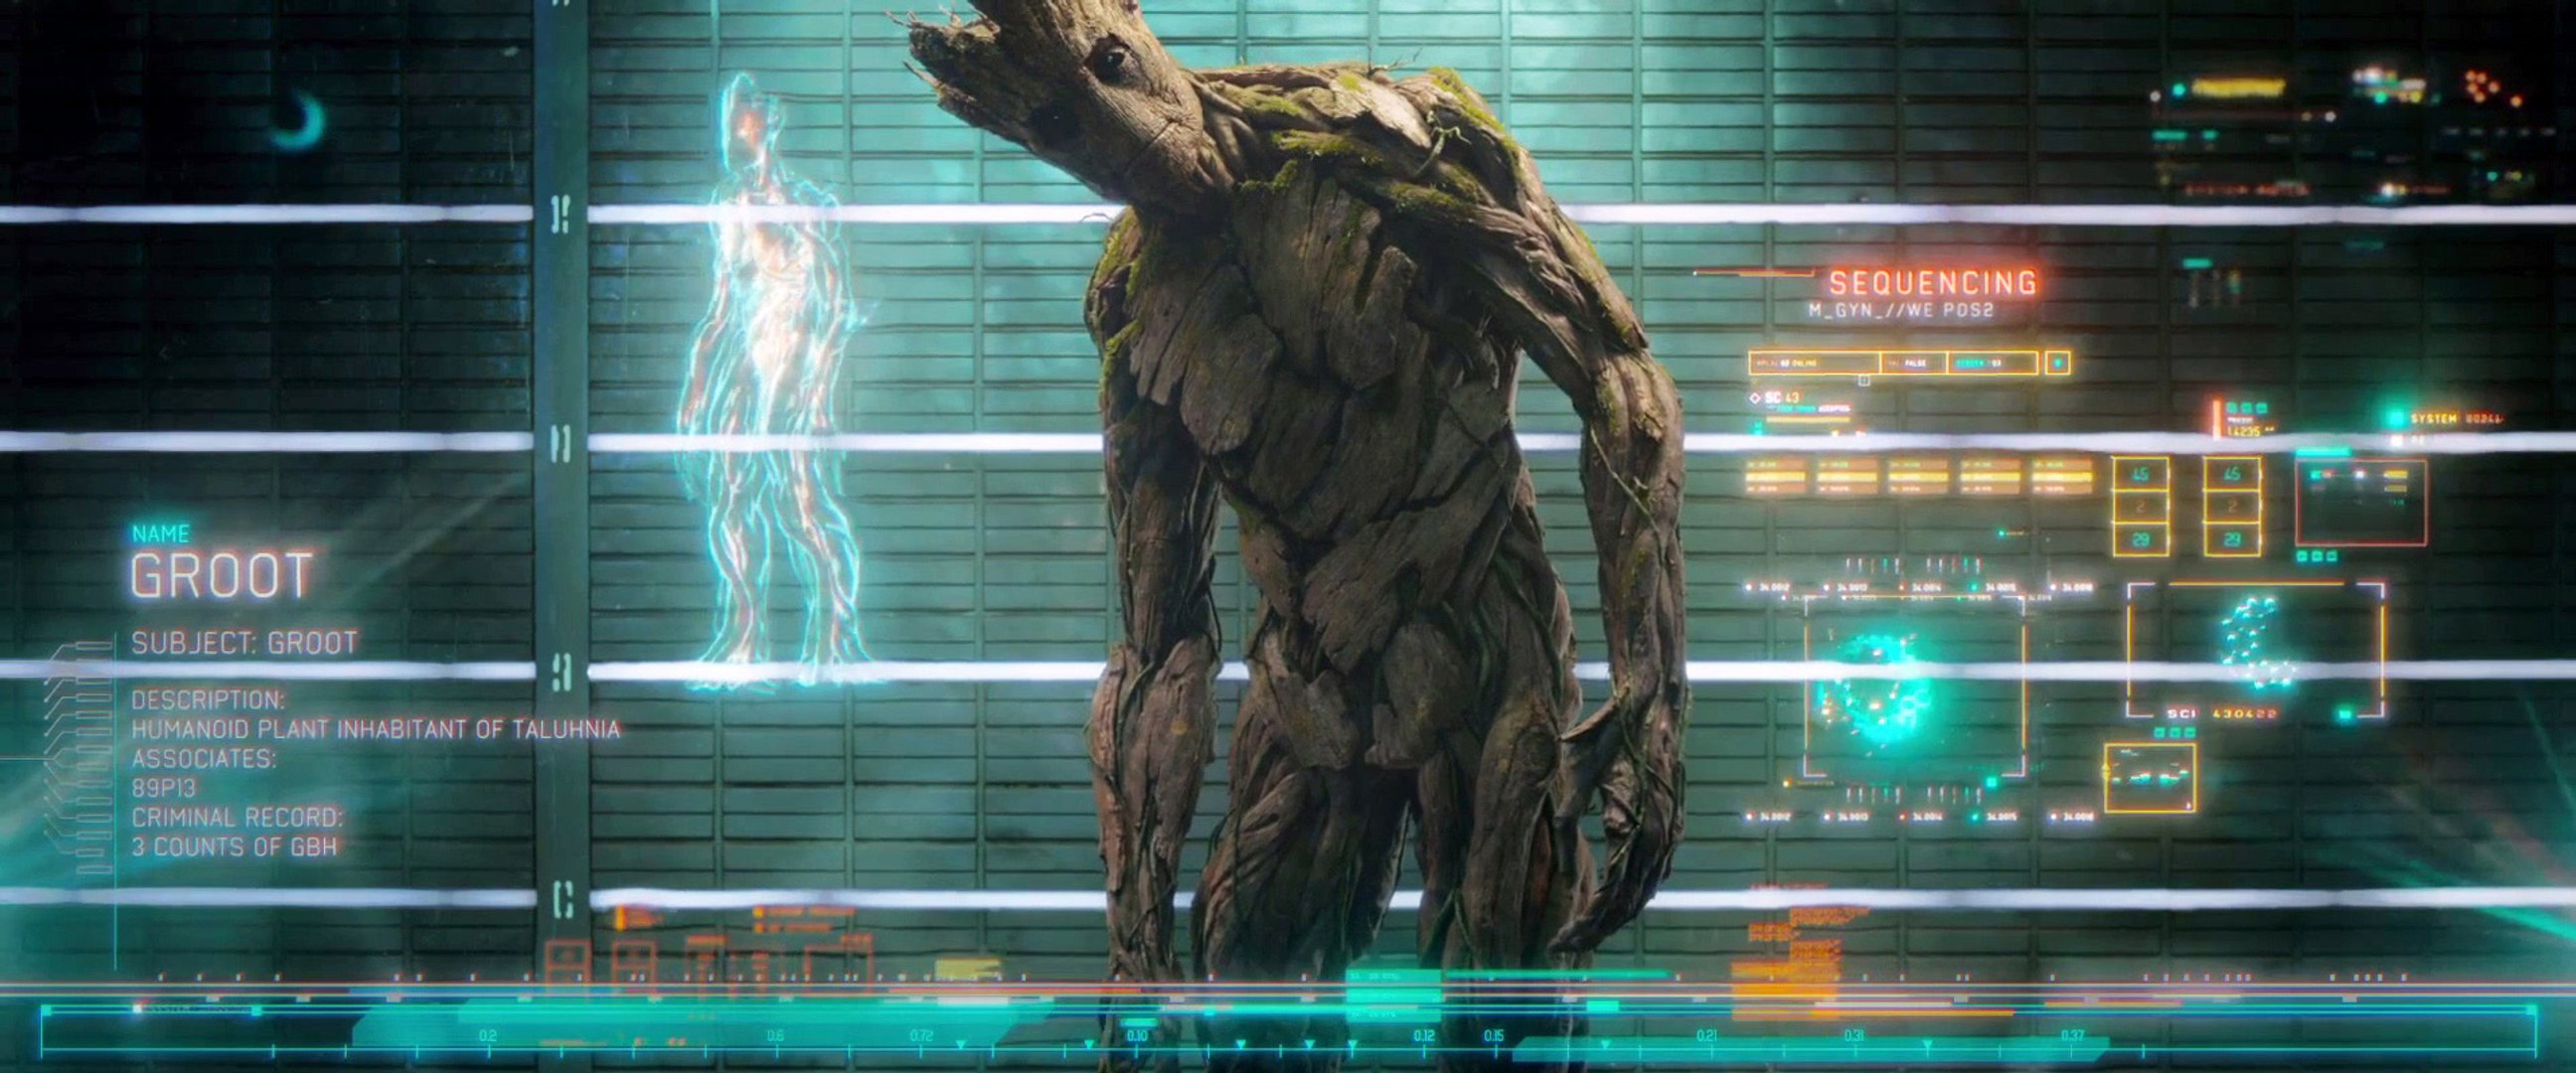 Meet the Guardians of the Galaxy : Groot [VO|HD]